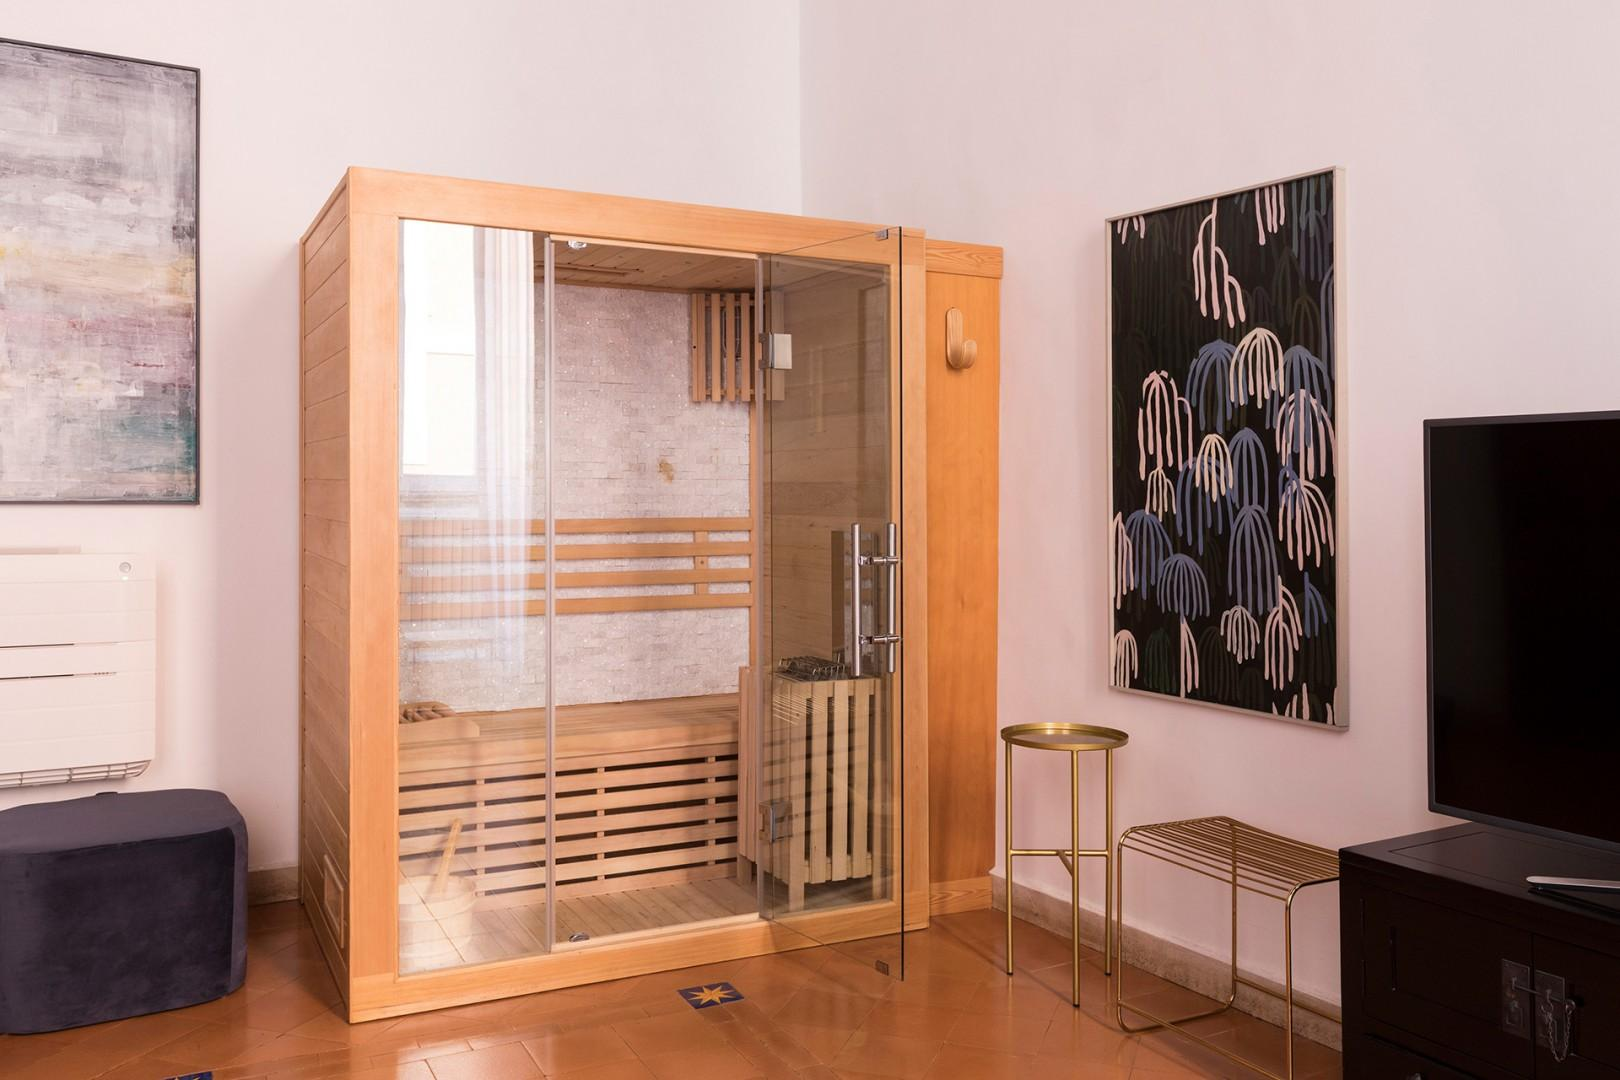 Special feature of this room is the private sauna!